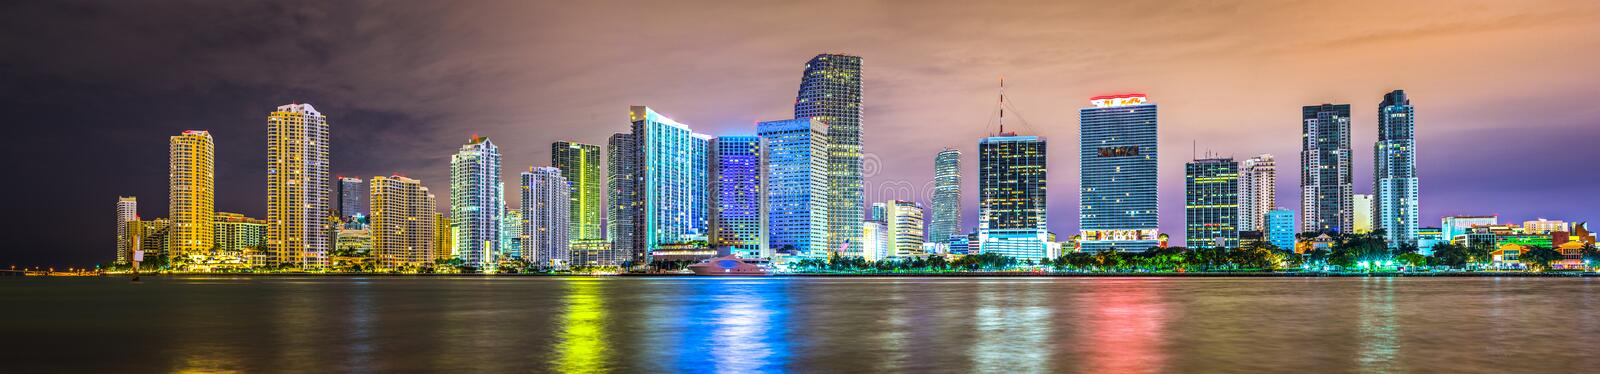 Download Miami Skyline stock image. Image of skyscrapers, dade - 36645819